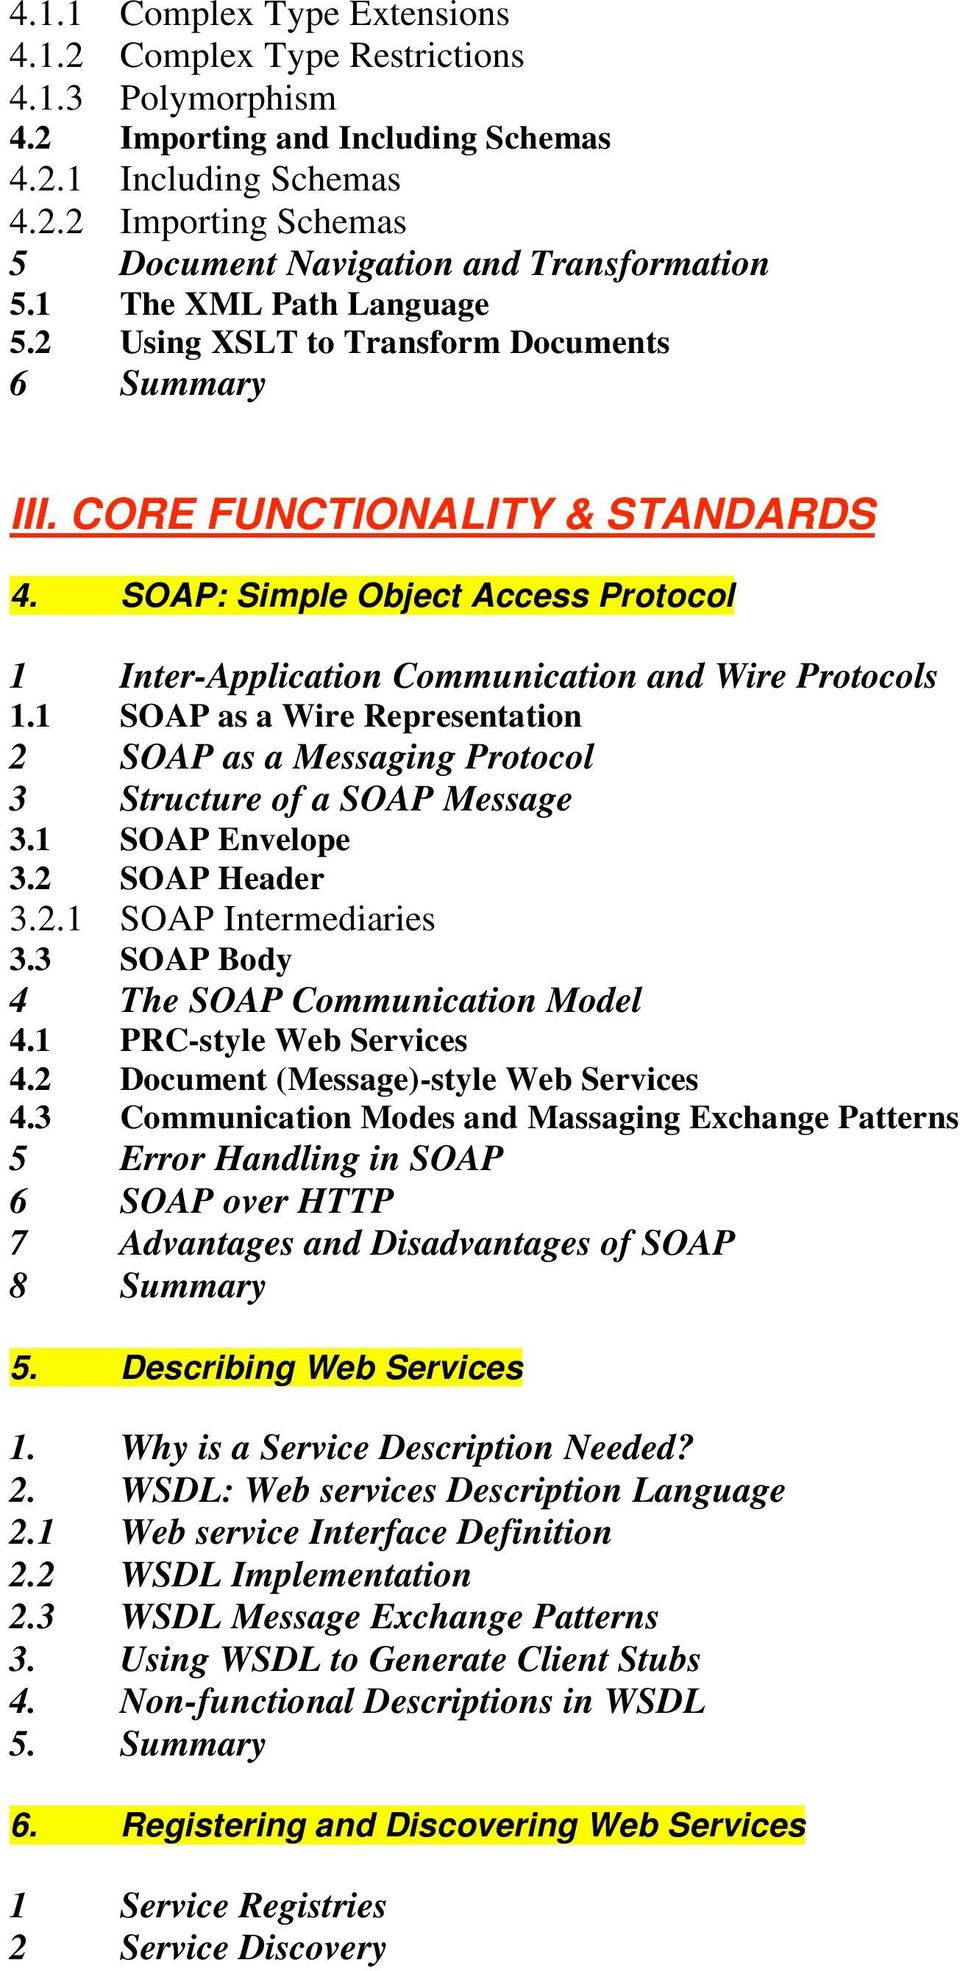 SOAP: Simple Object Access Protocol 1 Inter-Application Communication and Wire Protocols 1.1 SOAP as a Wire Representation 2 SOAP as a Messaging Protocol 3 Structure of a SOAP Message 3.